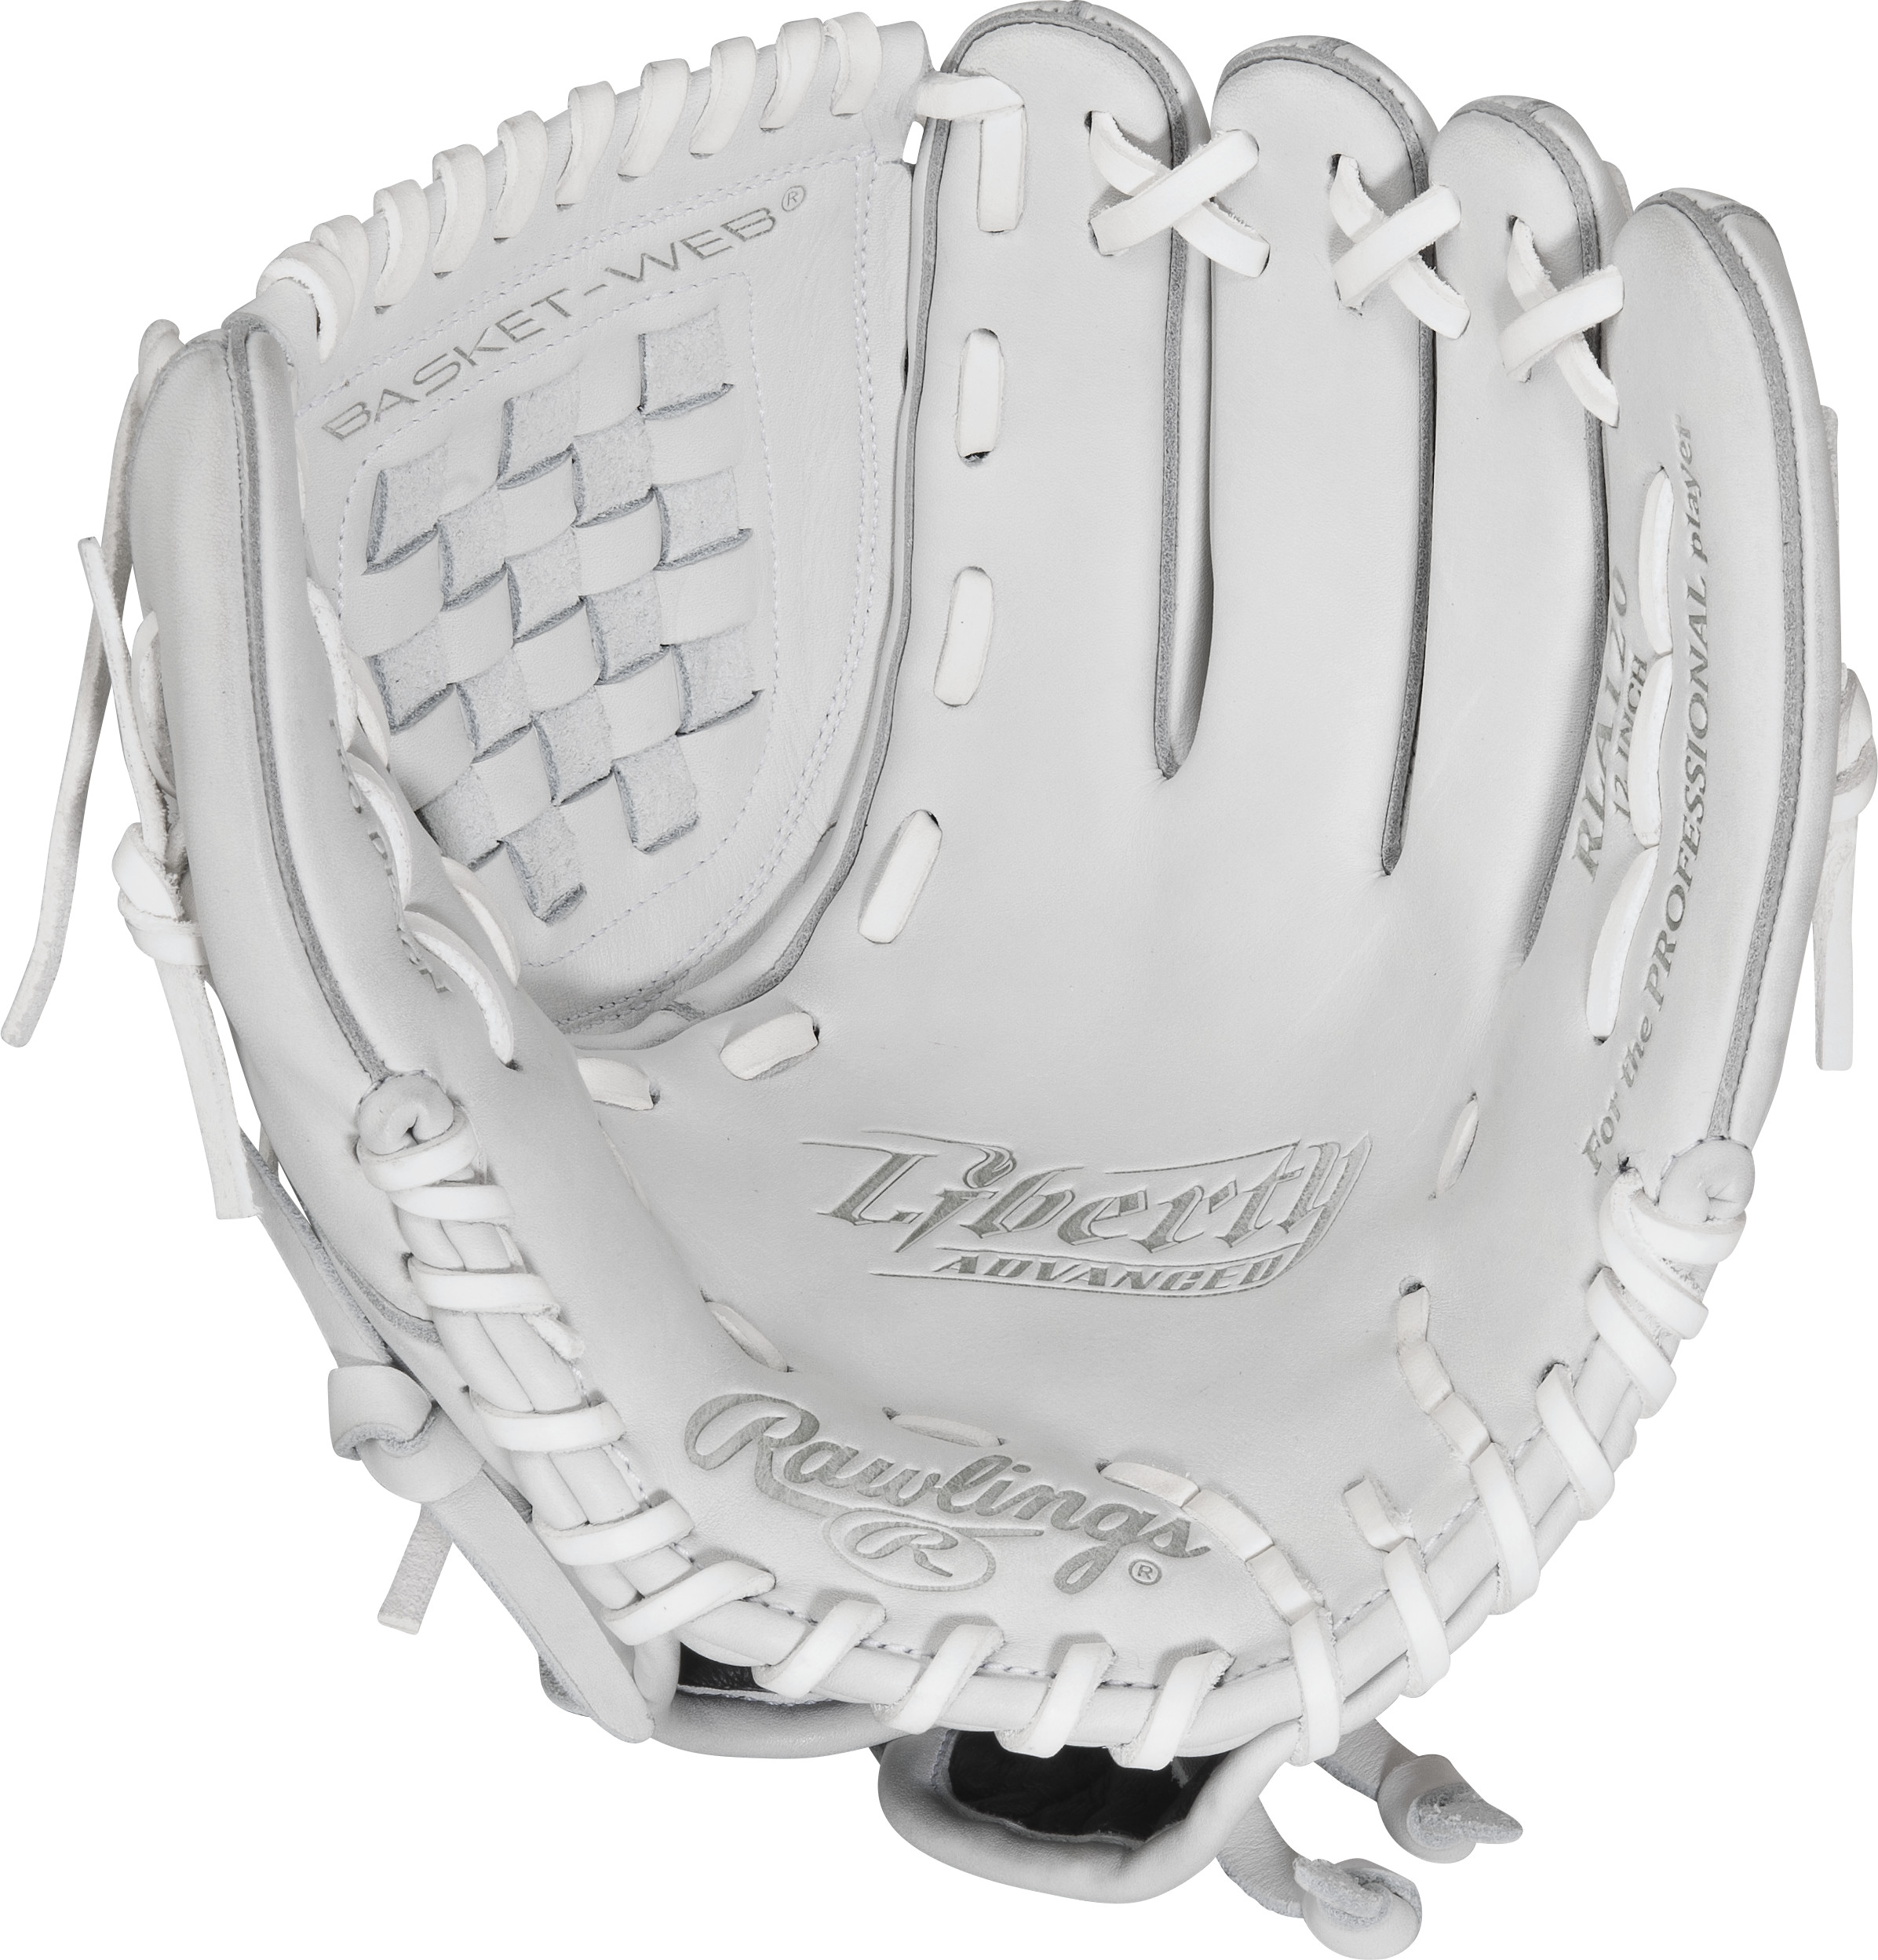 http://www.bestbatdeals.com/images/gloves/rawlings/RLA120_palm.jpg